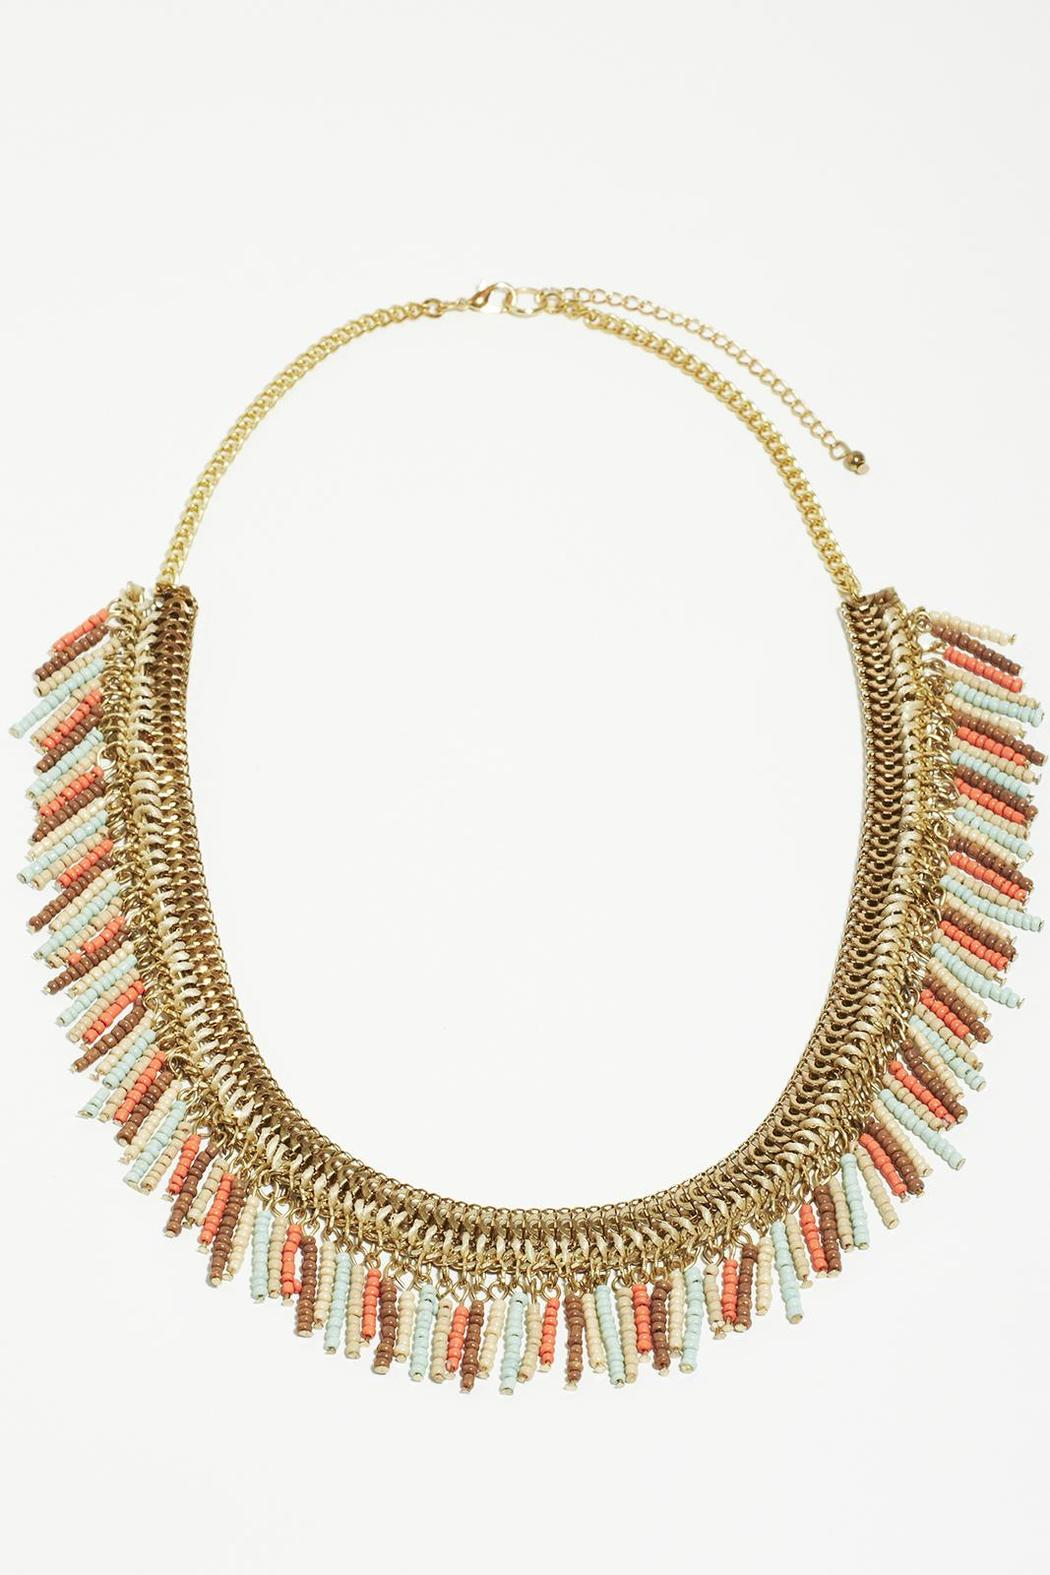 Fame Accessories Faded Fringe Necklace - Main Image